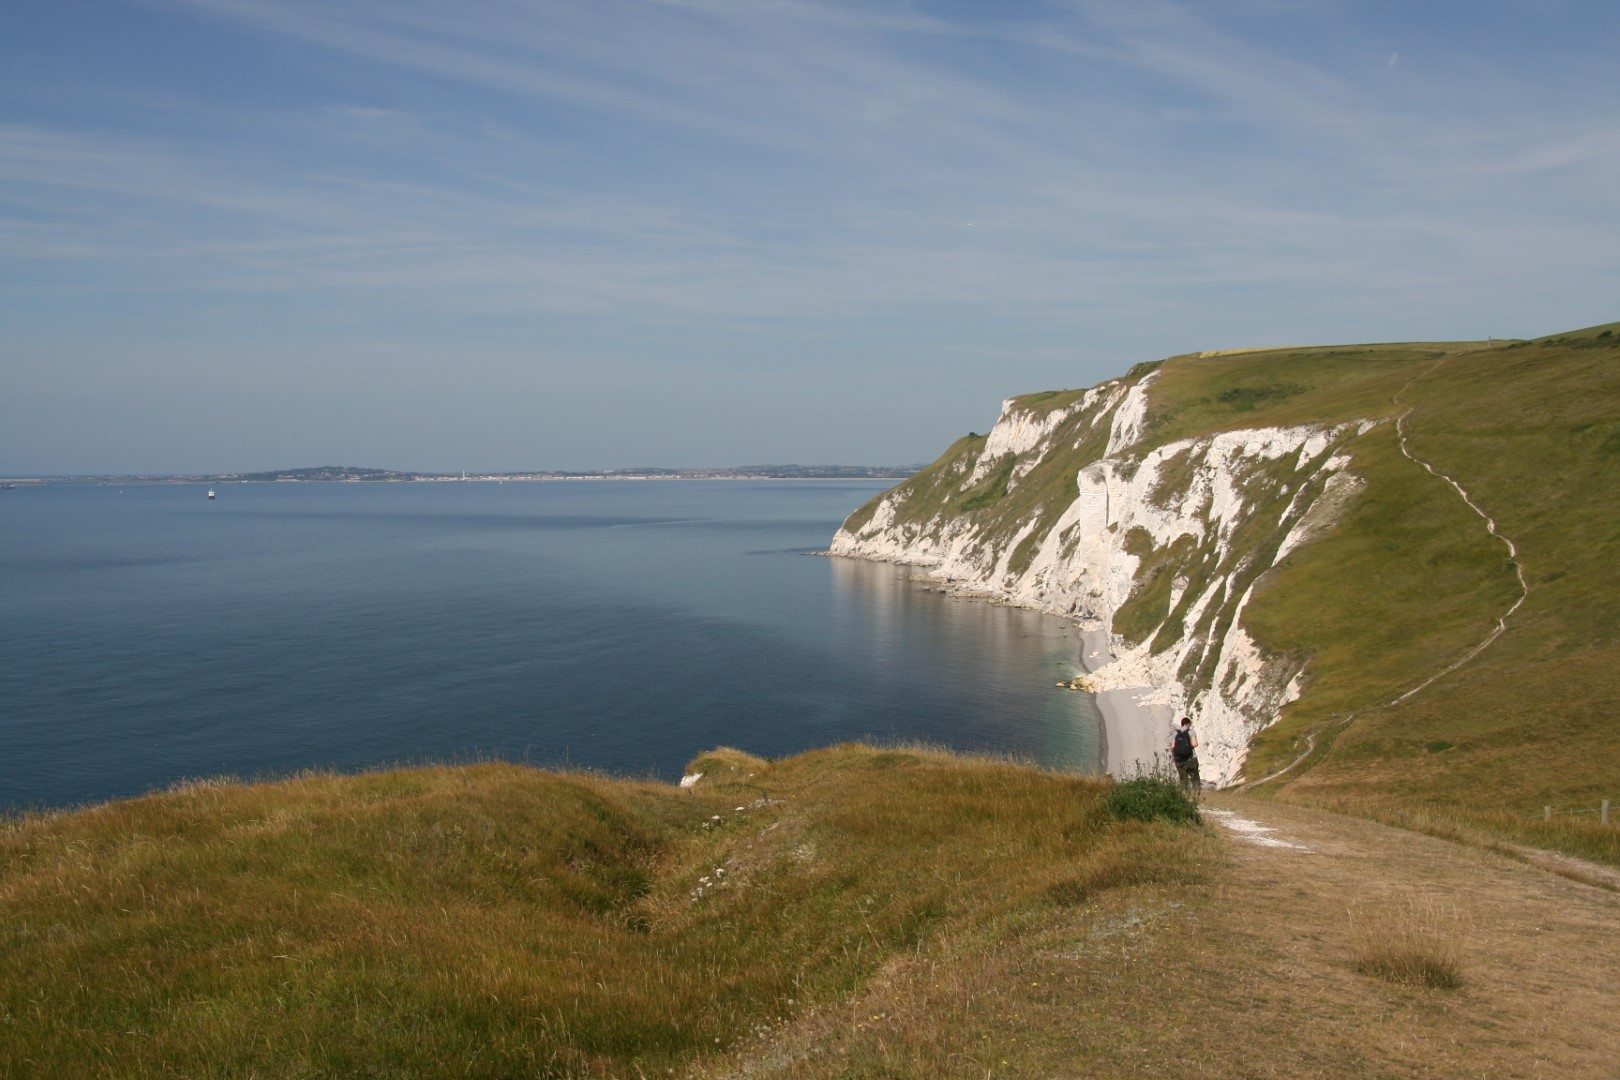 Coast path towards Weymouth.